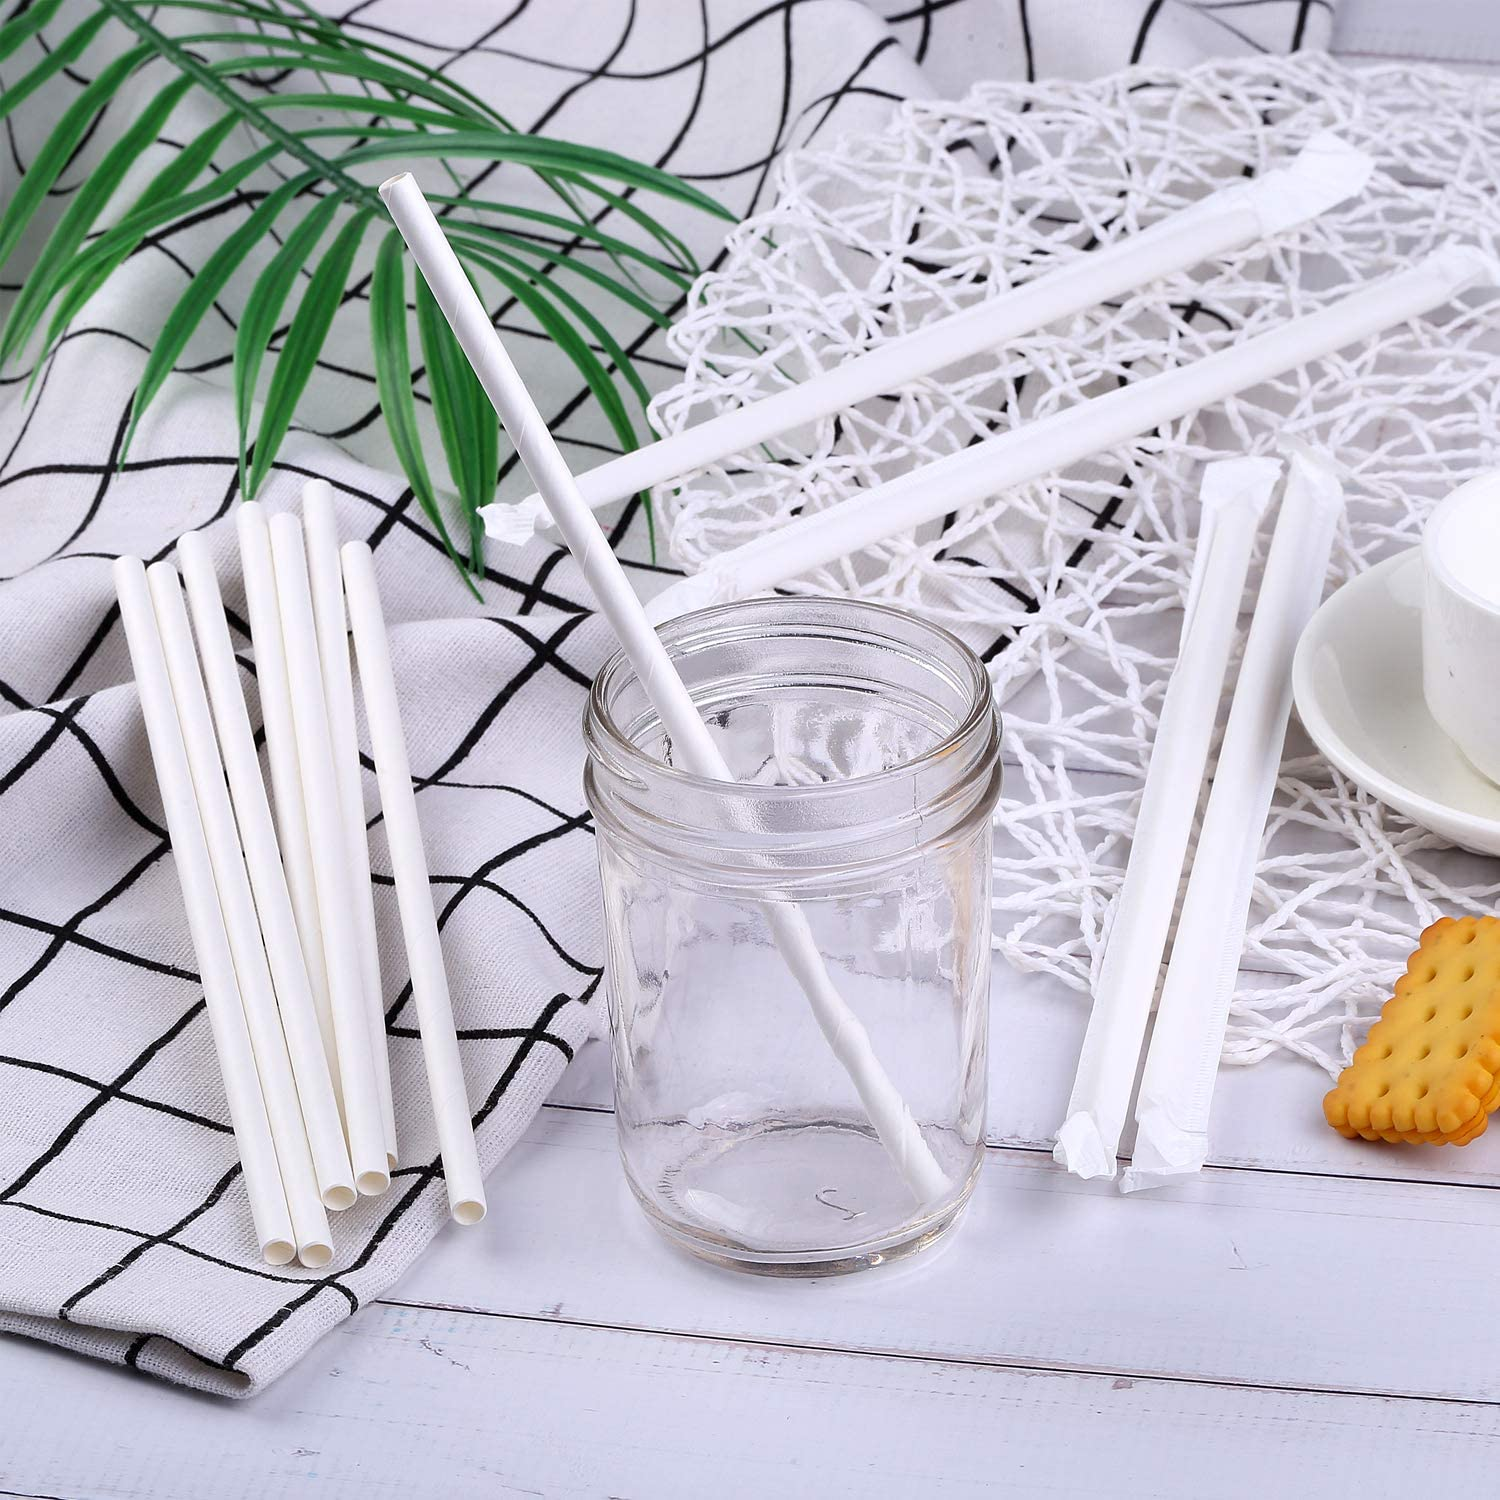 Cooraby 100 Pieces Individually Wrapped Paper Straws White Paper Straws Biodegradable Drinking Straw Dye-Free Paper Straws Decorations for Wedding Supplies and Party Favor